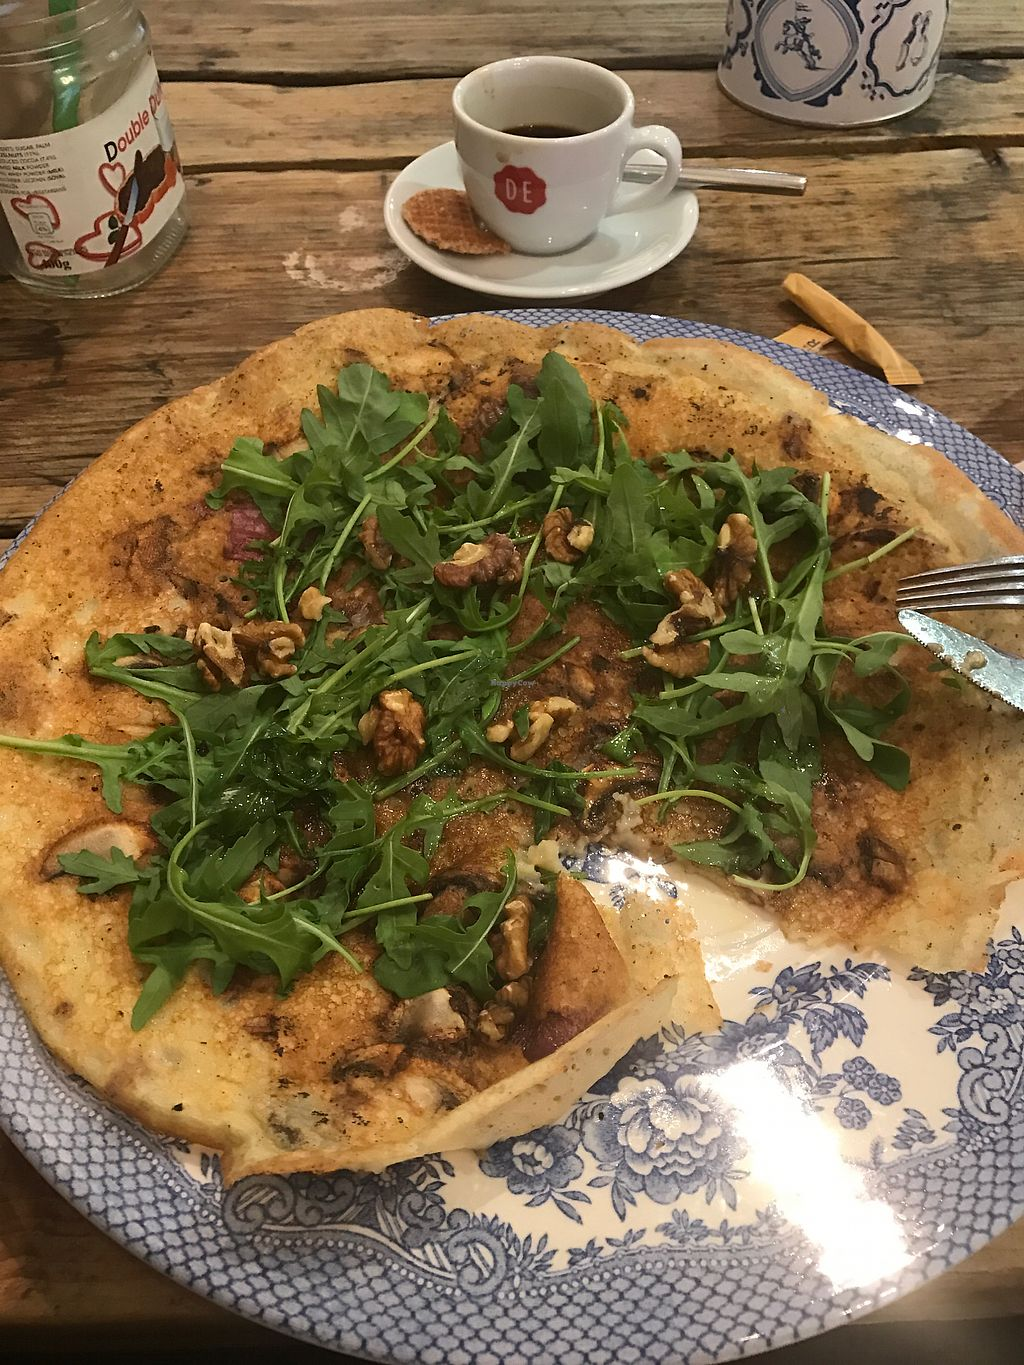 """Photo of Double Dutch Pancake House  by <a href=""""/members/profile/LynnCVoss"""">LynnCVoss</a> <br/>Vegan French pancake.  <br/> September 21, 2017  - <a href='/contact/abuse/image/85028/306772'>Report</a>"""